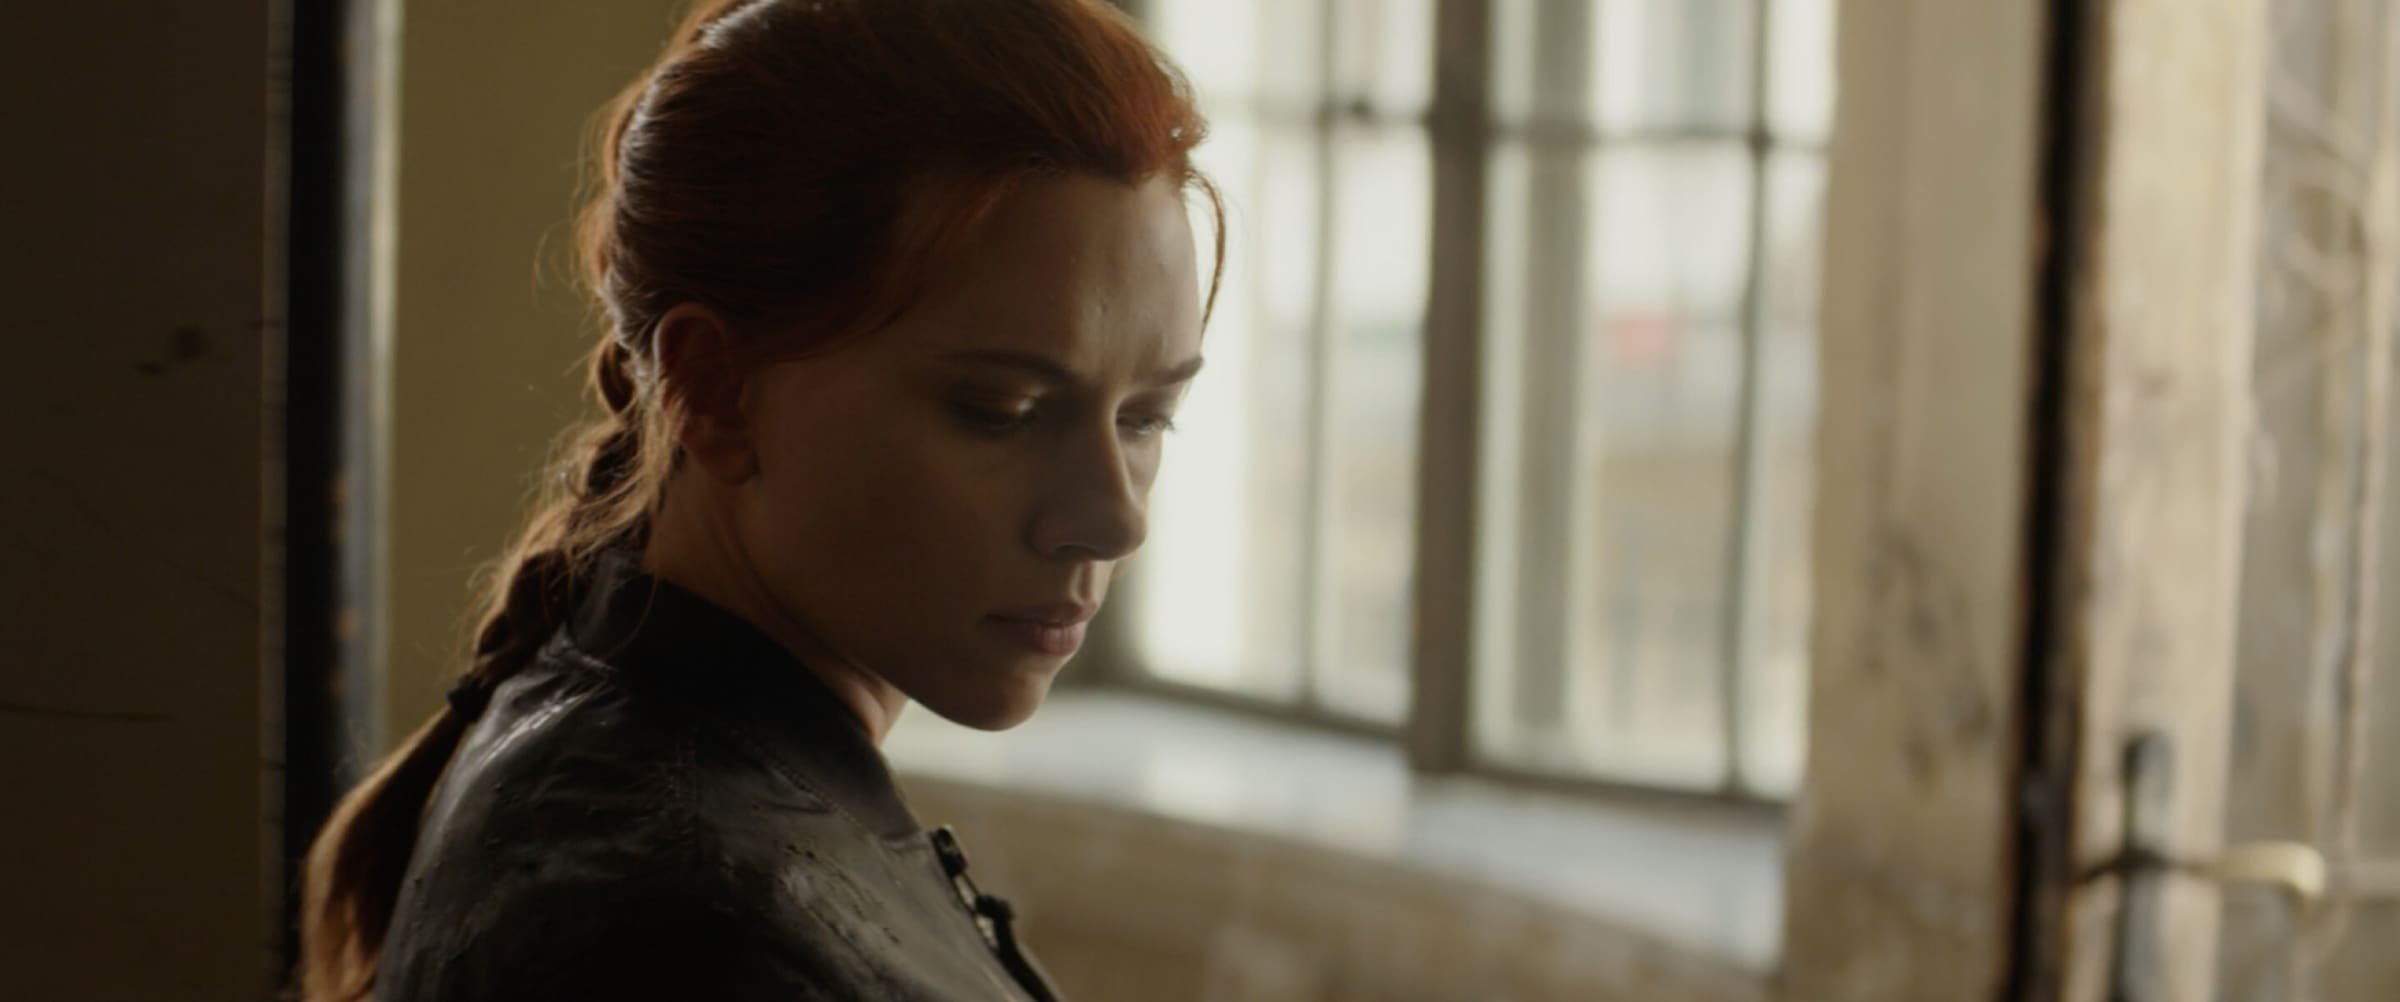 Watch the Black Widow trailer | In cinemas 2020